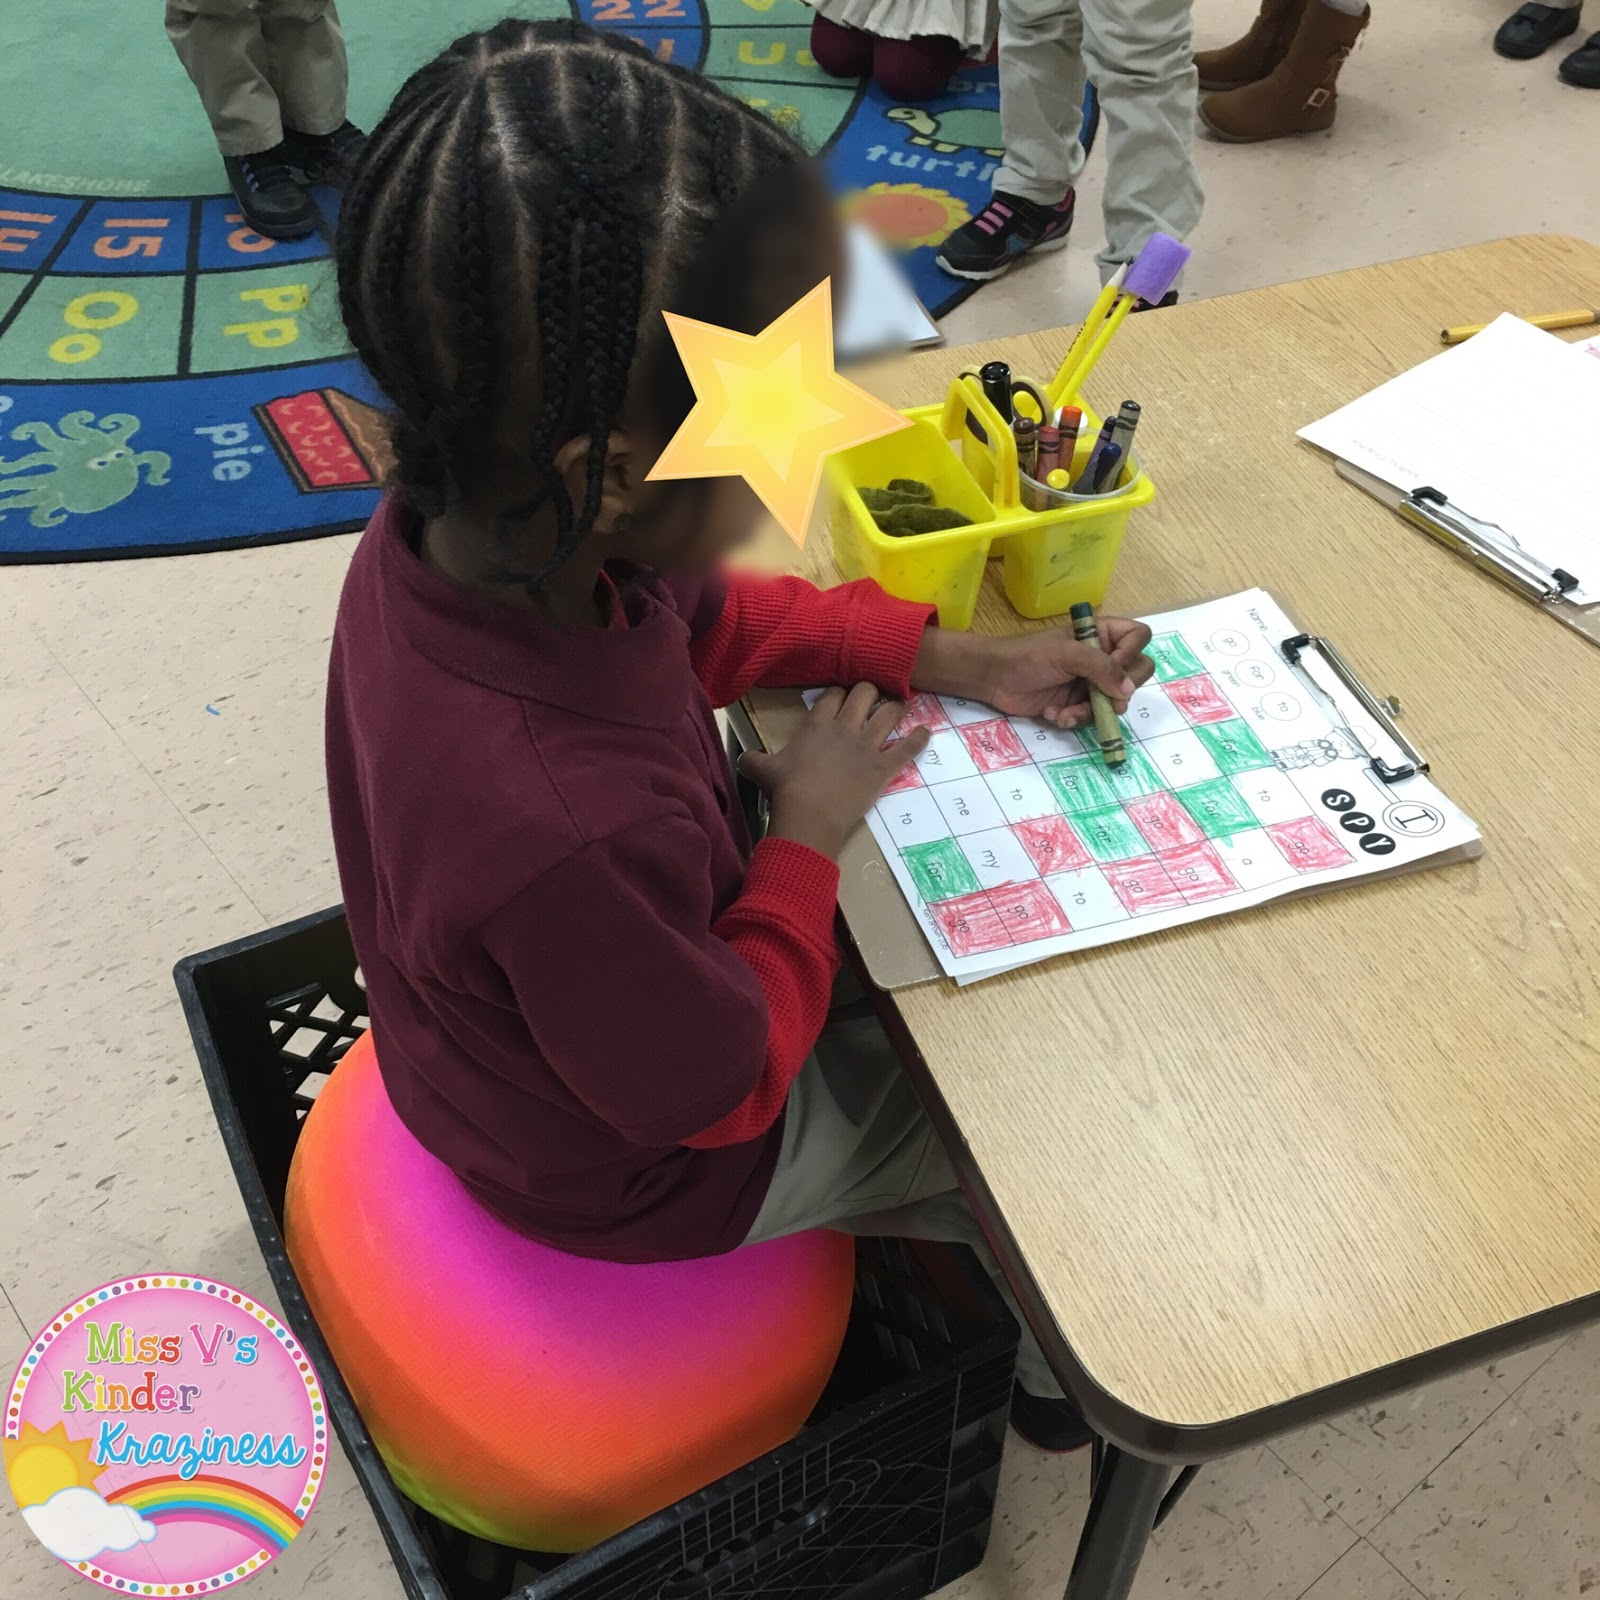 ball chairs for students event chair covers wholesale flexible seating hack diy stability the enthusiastic my kiddos l o v e these new as they call it bouncy seats especially fidgety i might have to go over budget a little and buy some